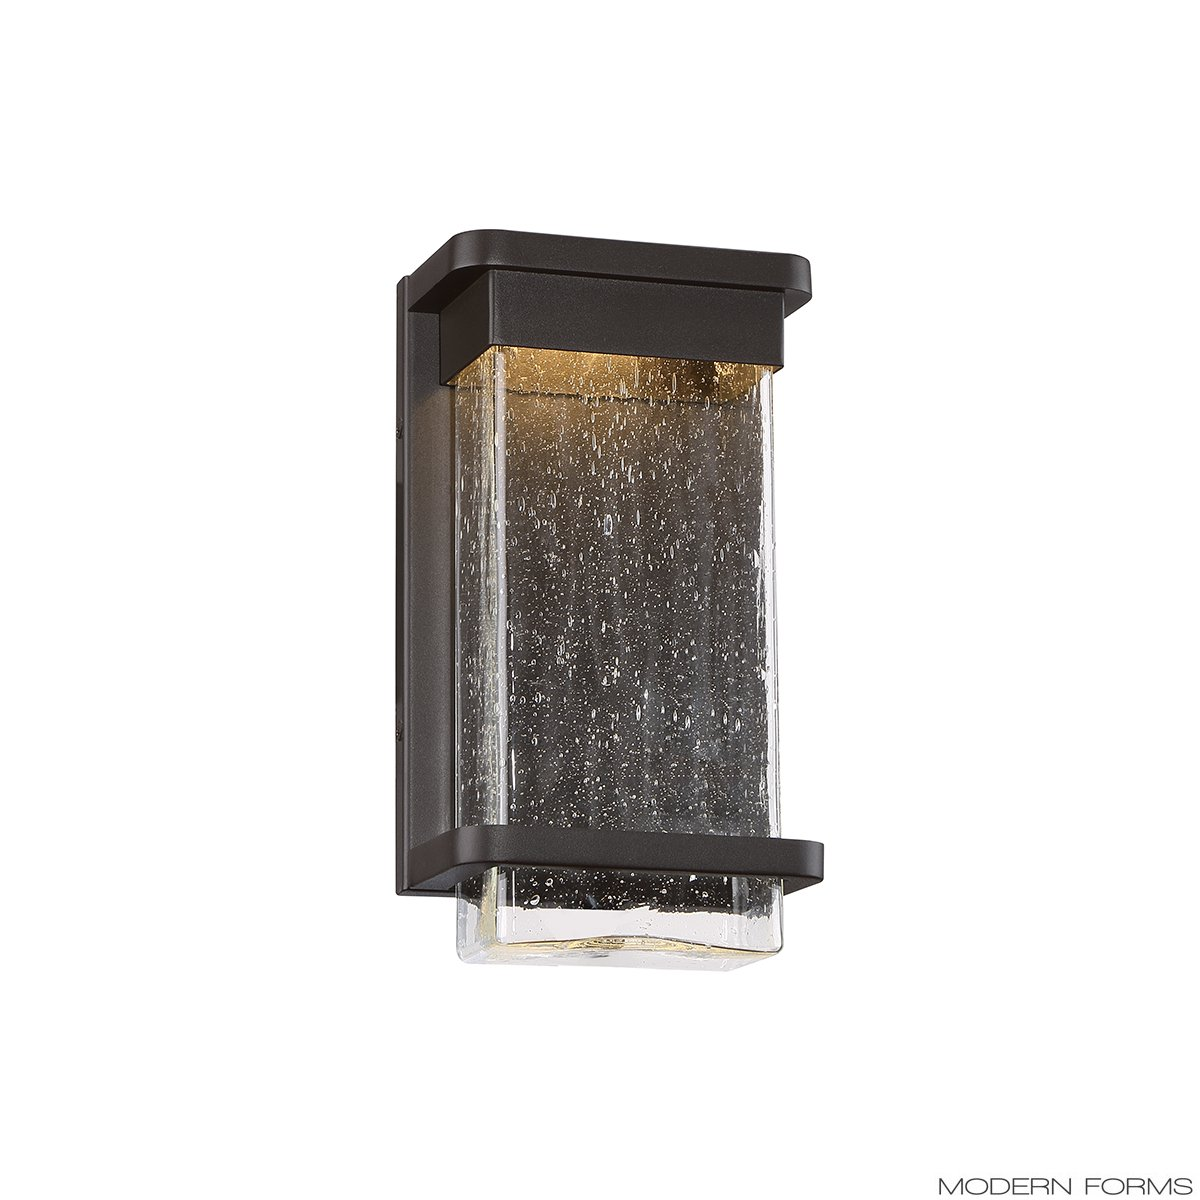 modern forms ws w32512 vitrine small led outdoor sconce. Black Bedroom Furniture Sets. Home Design Ideas